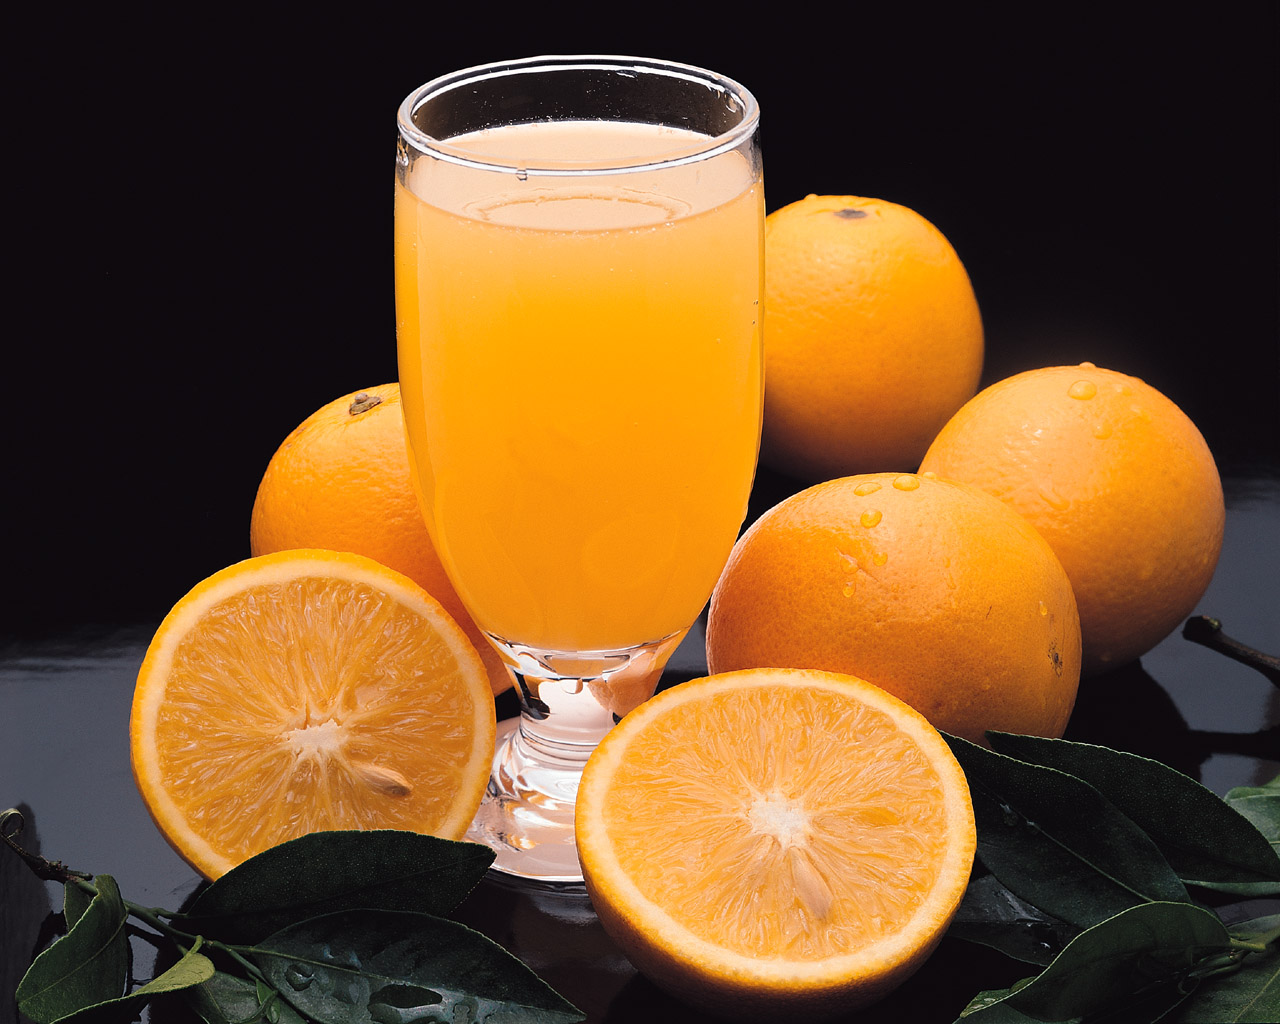 http://2.bp.blogspot.com/-1qfJEiws_SI/TdCaZD2gCuI/AAAAAAAAA7k/Vd_T9Vt06O0/s1600/Nutritional%20Information%20Of%20Orange%20Juice.jpg